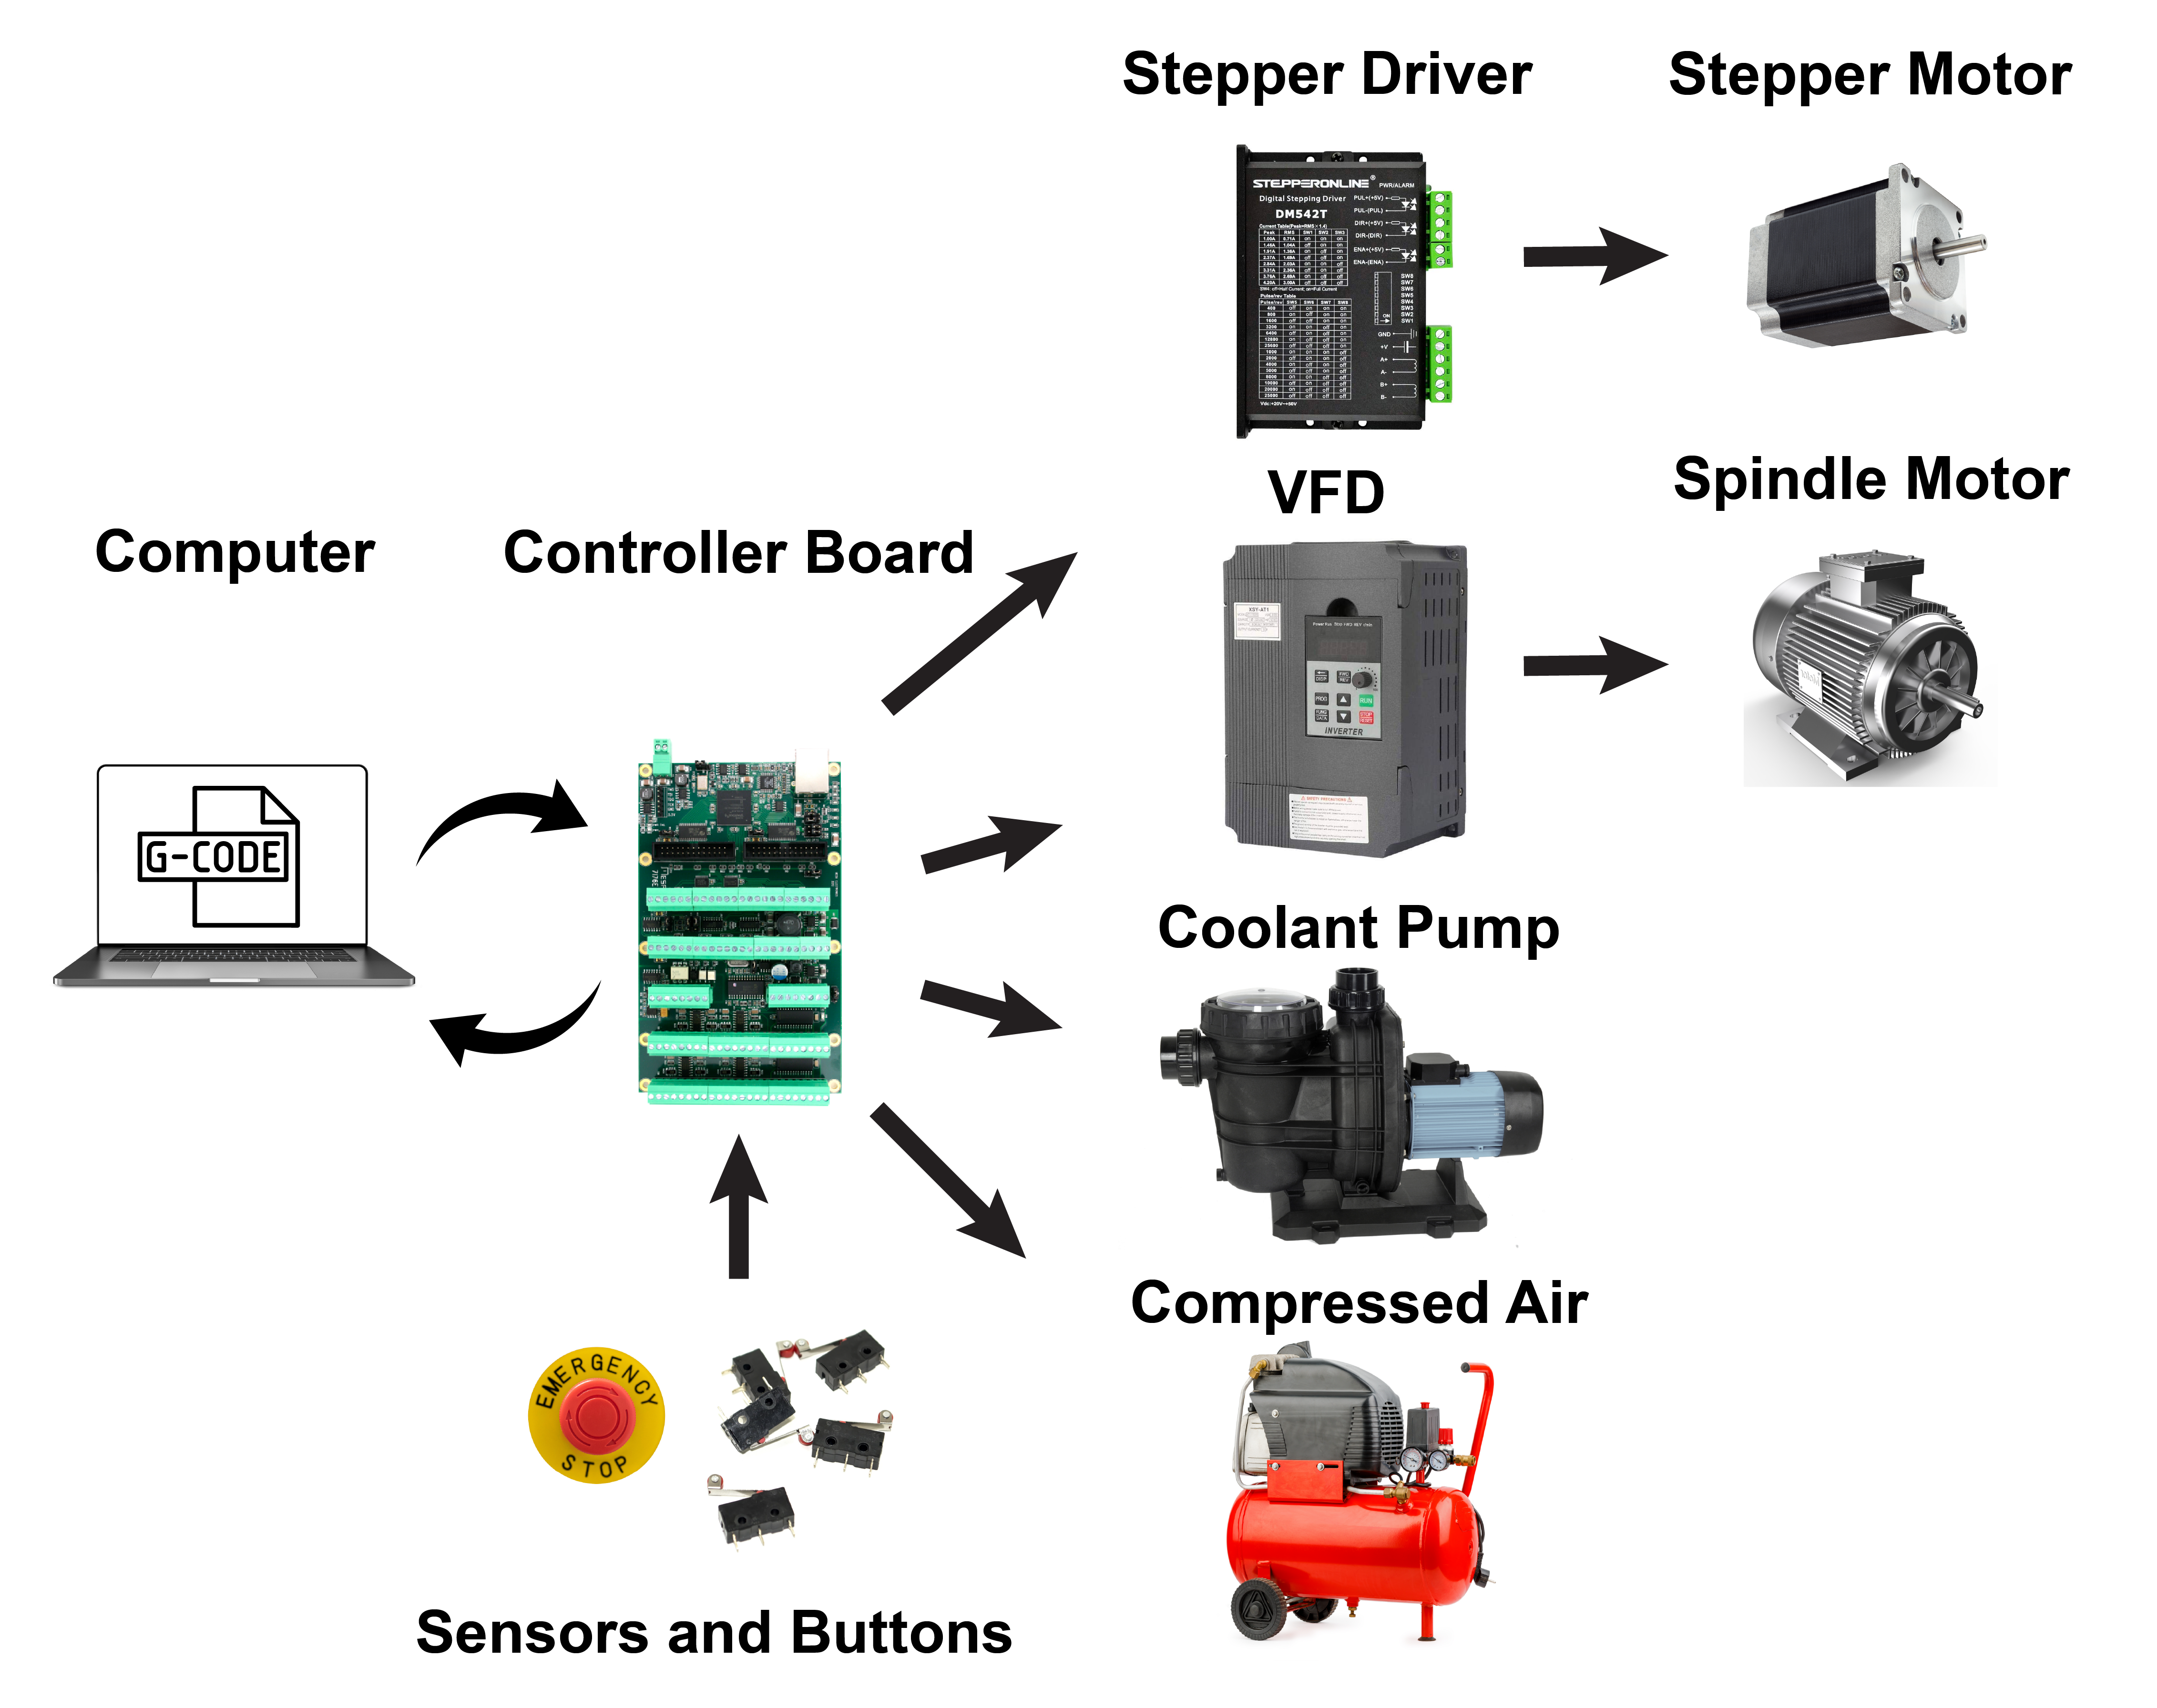 Examples of electrical components that can be interfaced with a CNC controller board.